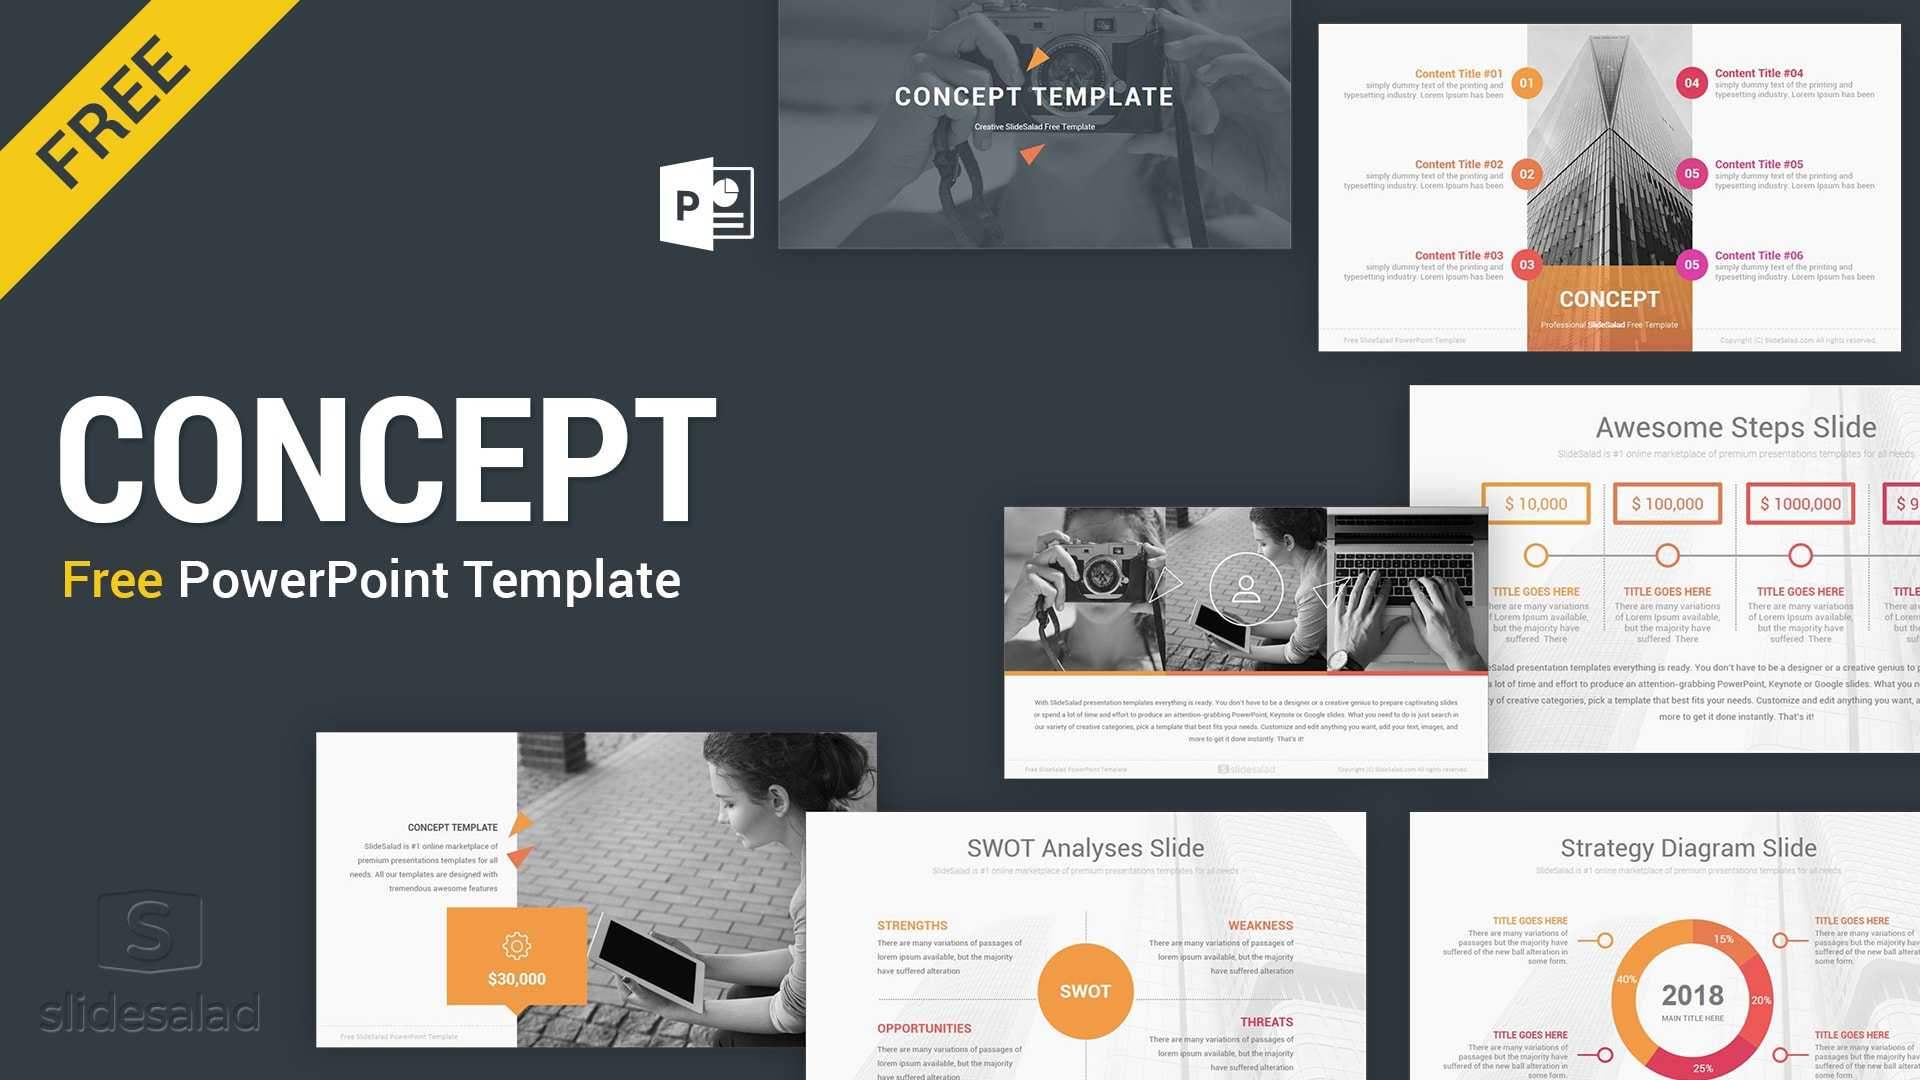 Concept Free Powerpoint Presentation Template - Free within Free Powerpoint Presentation Templates Downloads